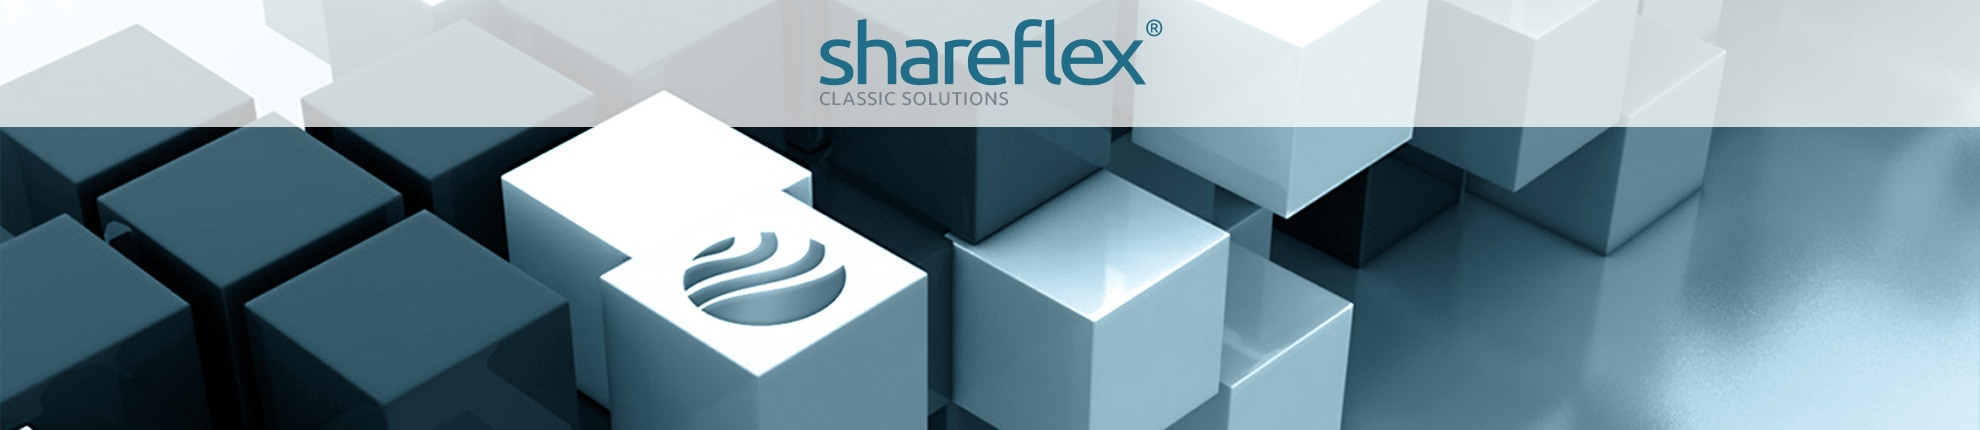 Cubes and the Portal Systems Globe representing the brand Shareflex